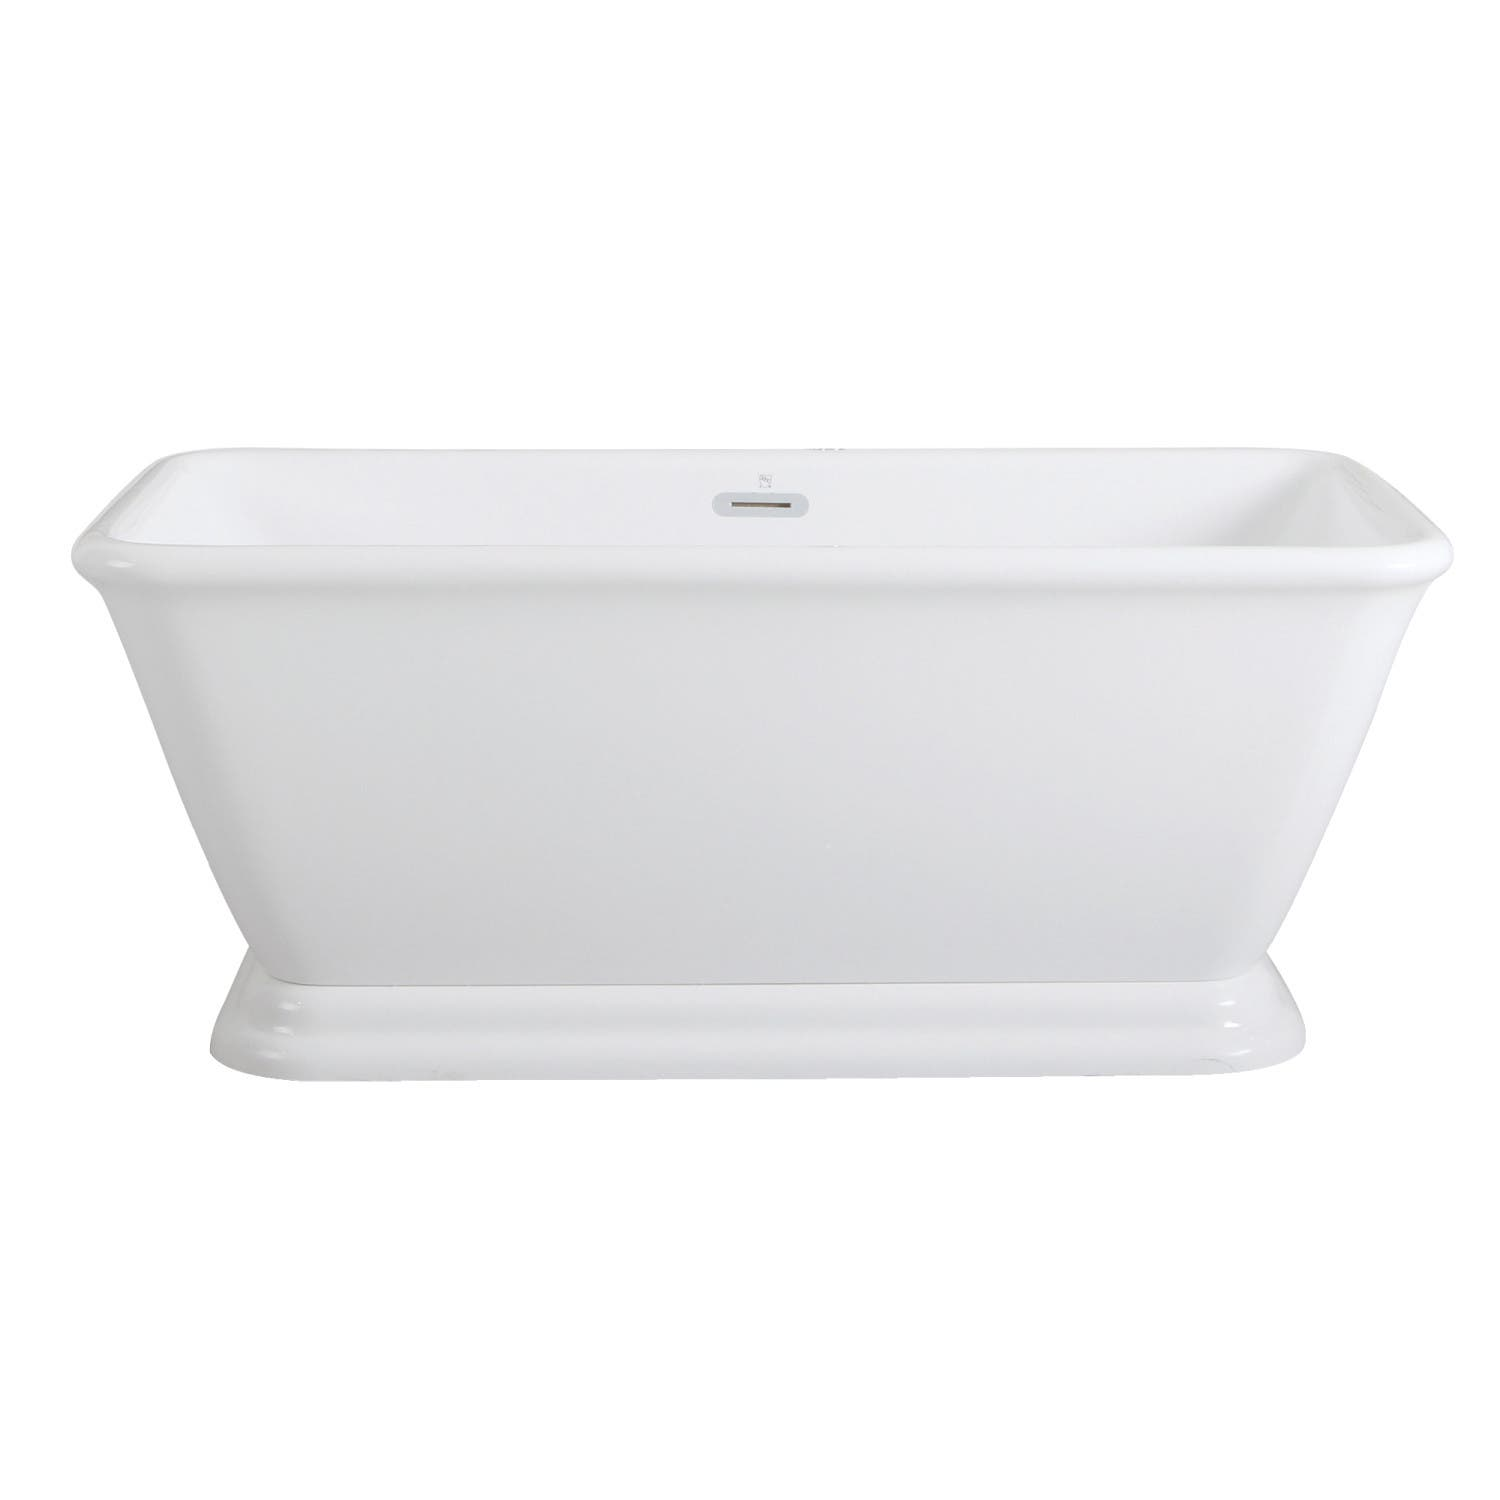 Aqua Eden VTSQ663124 66-Inch Acrylic Double Ended Pedestal Tub with Square Overflow and Pop-Up Drain, White